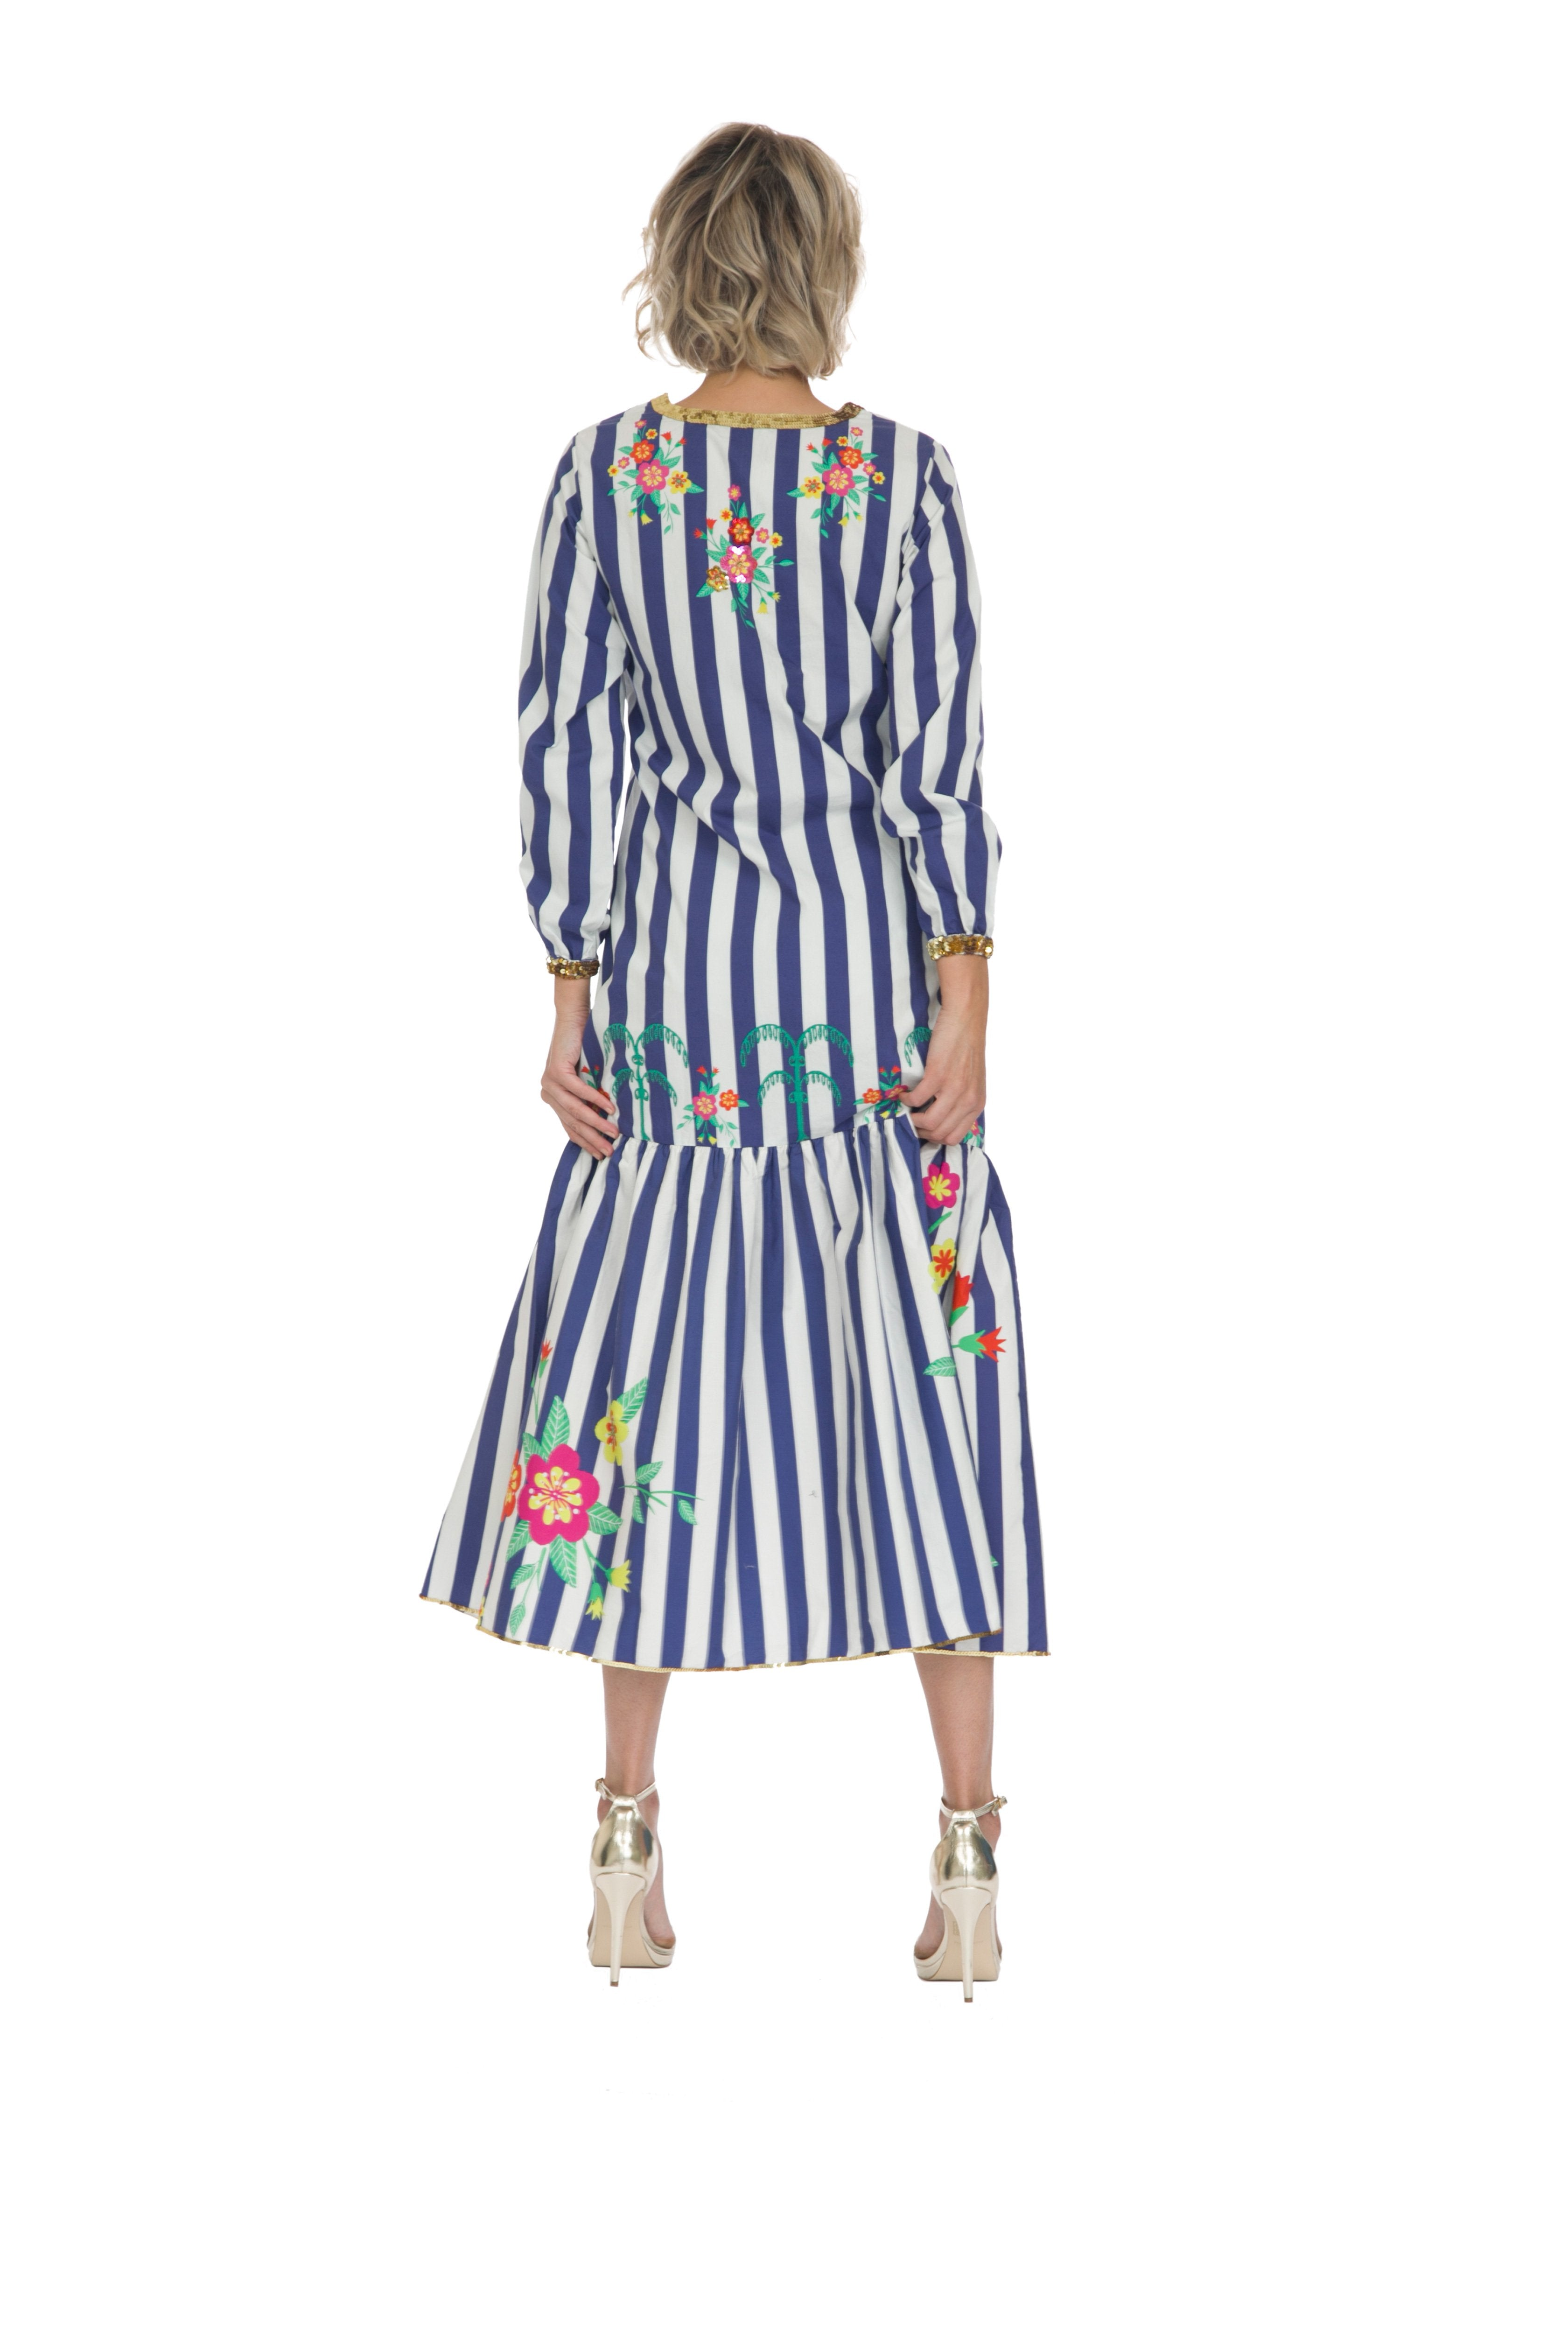 Blue Striped Blossom Long Sleeved Dress by Bonita Collective